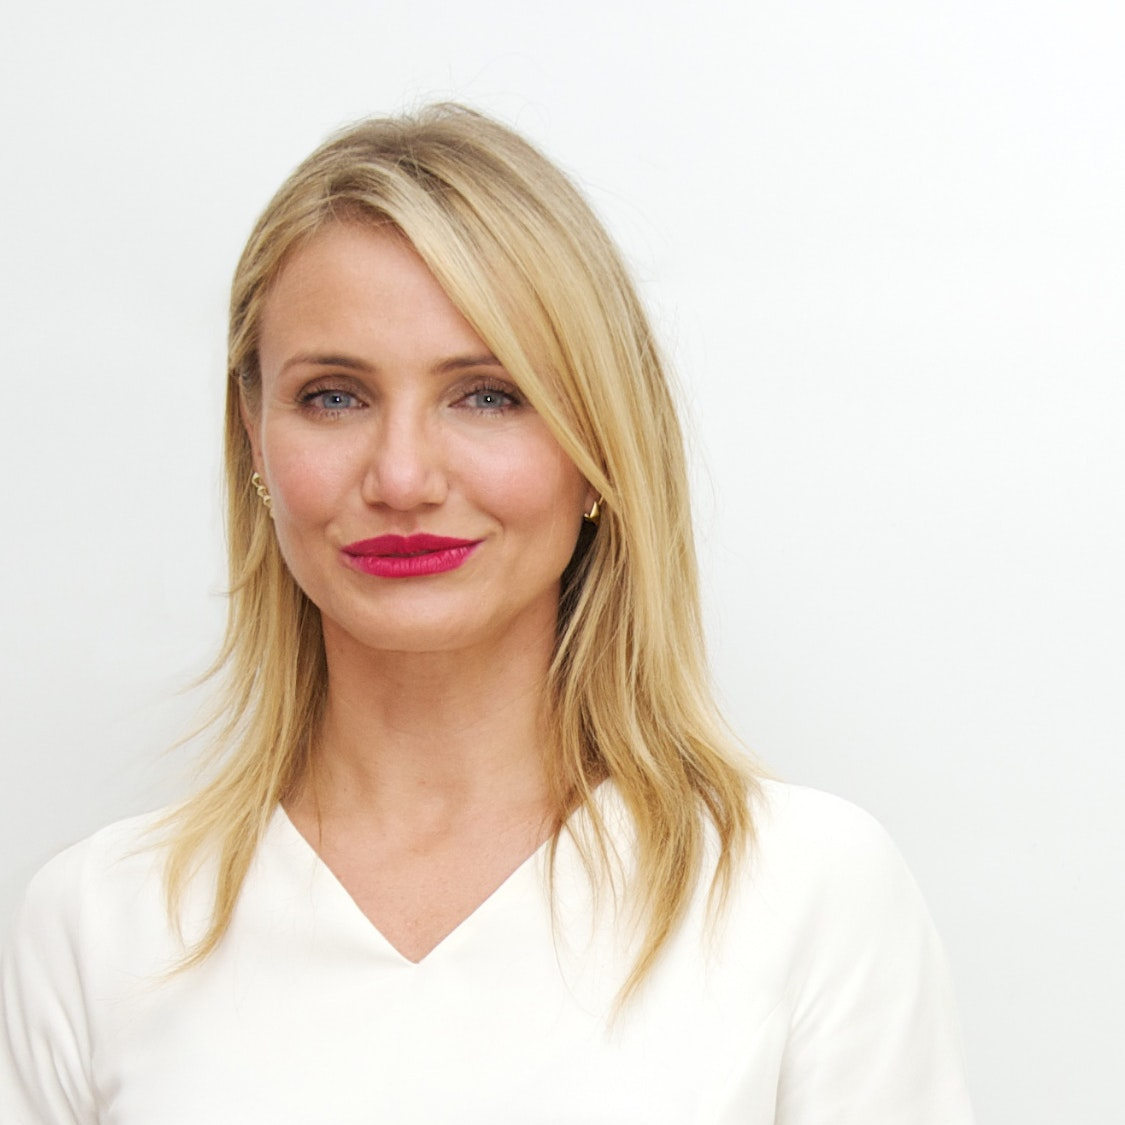 How to Achieve Cameron Diaz's California-Girl Glow and Smooth Skin